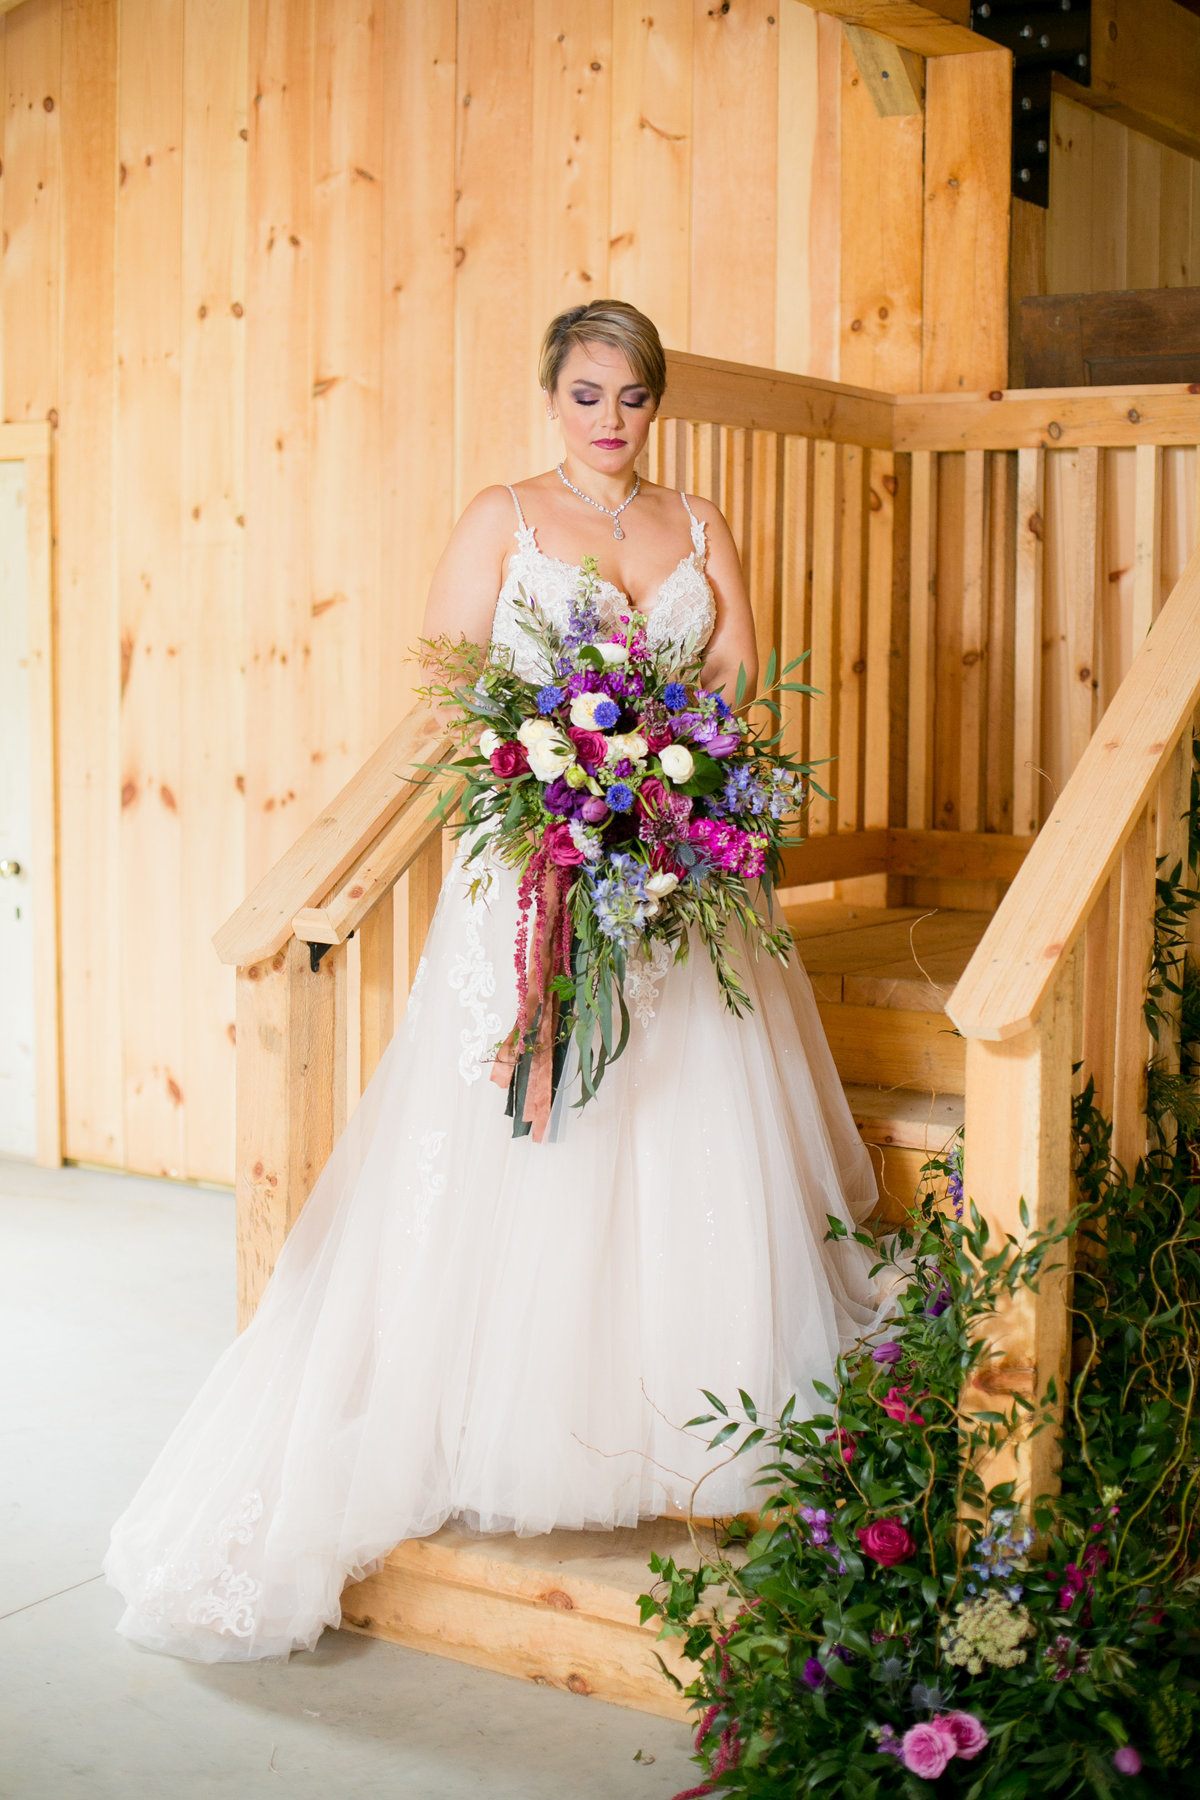 Rachel_Girouard_Photography_Styled_Shoot-240